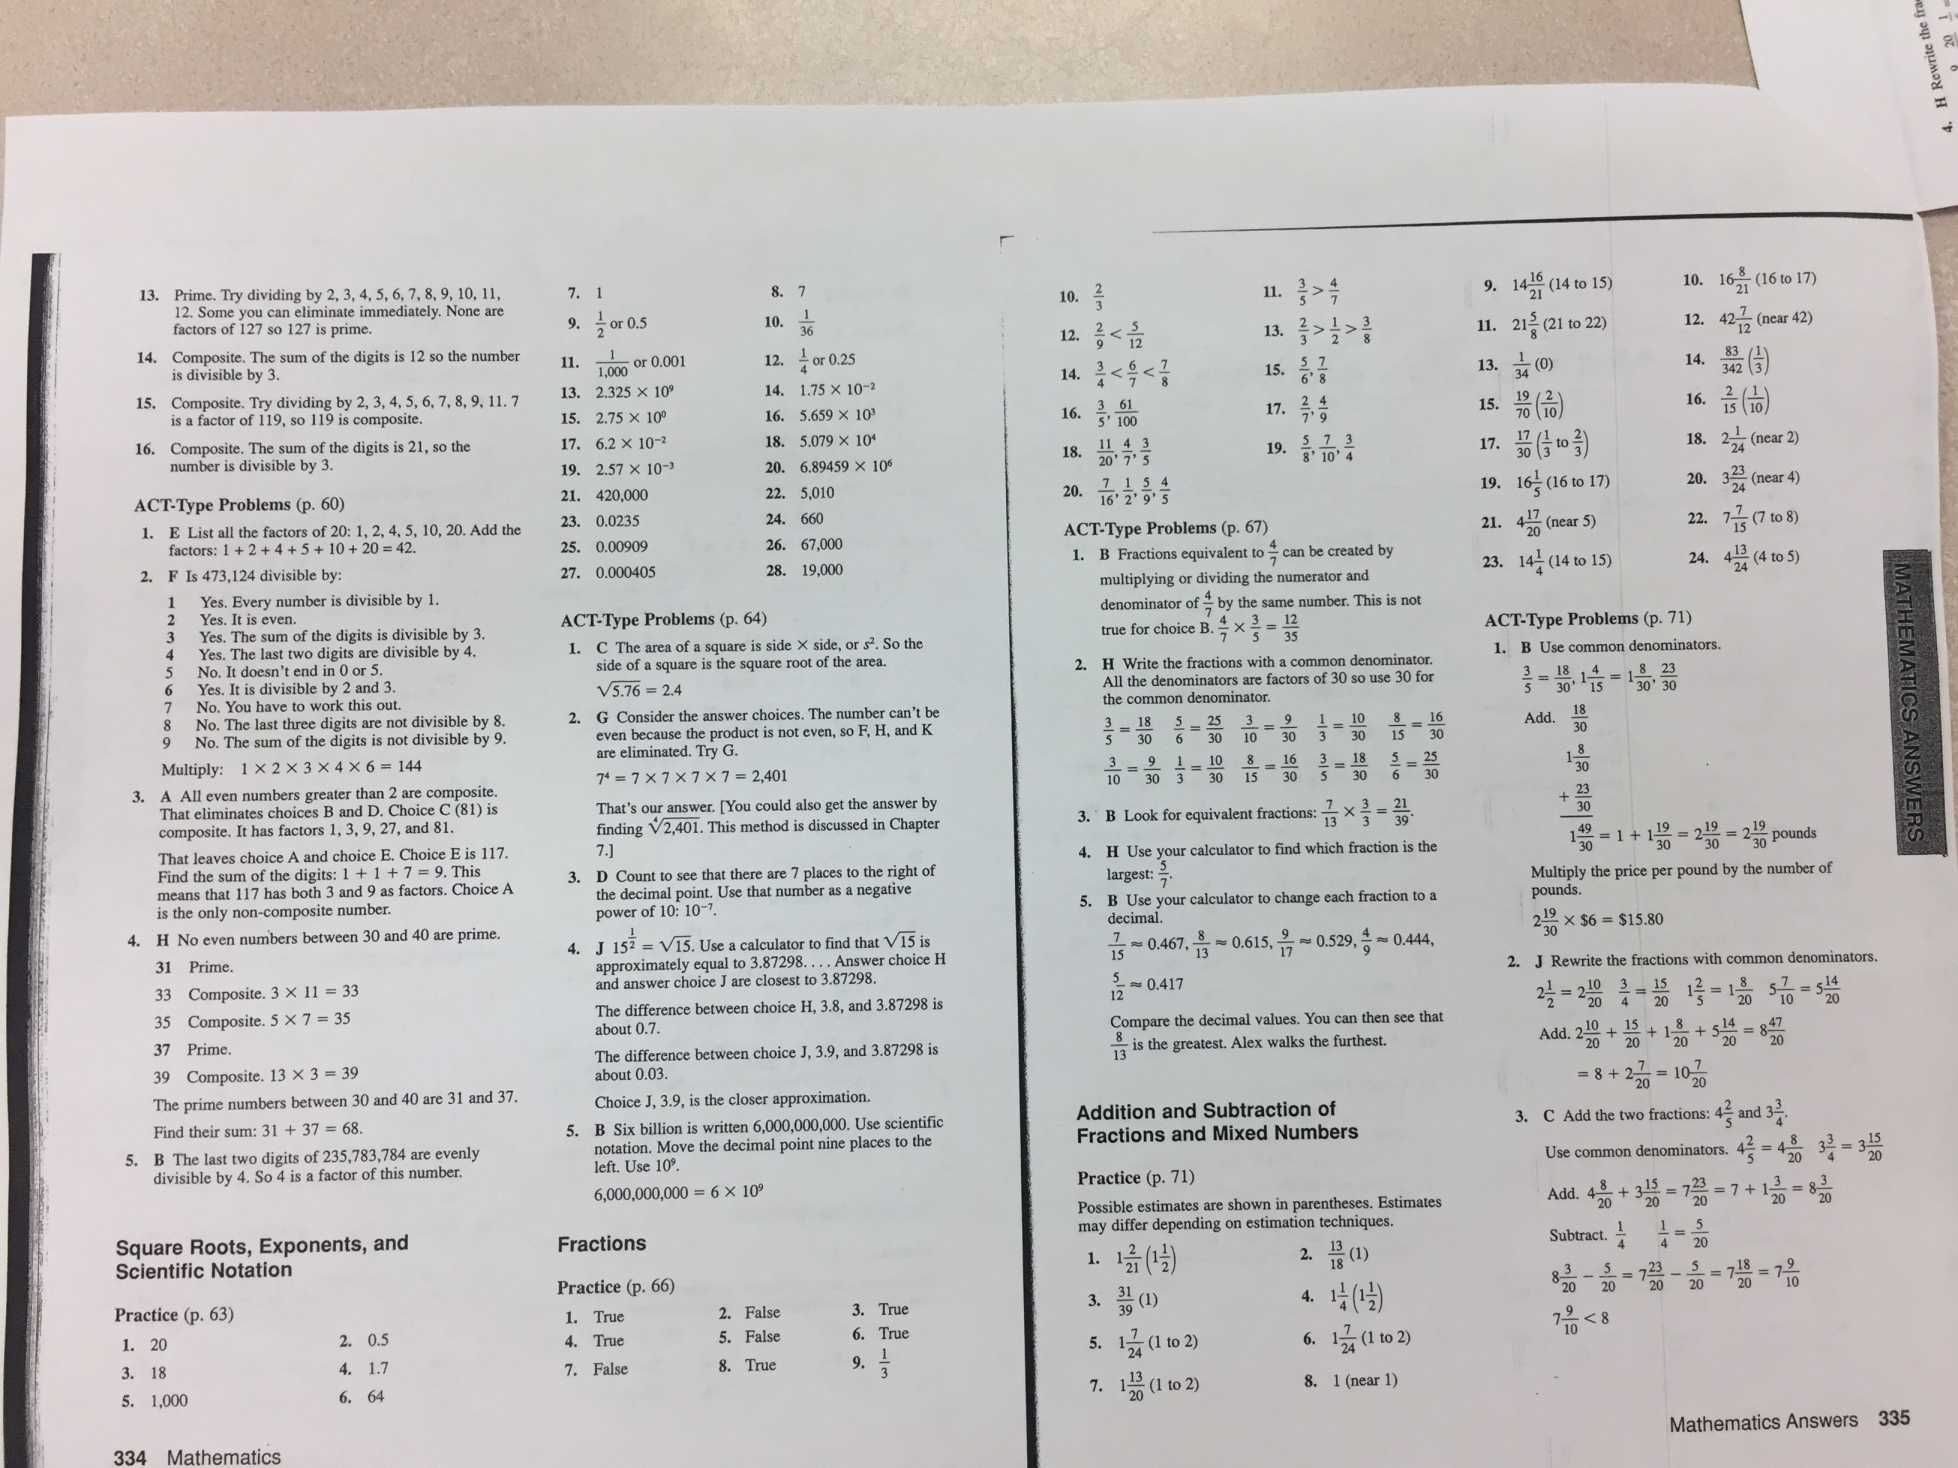 Official Teaching Transparency Worksheet Answers Chapter 6